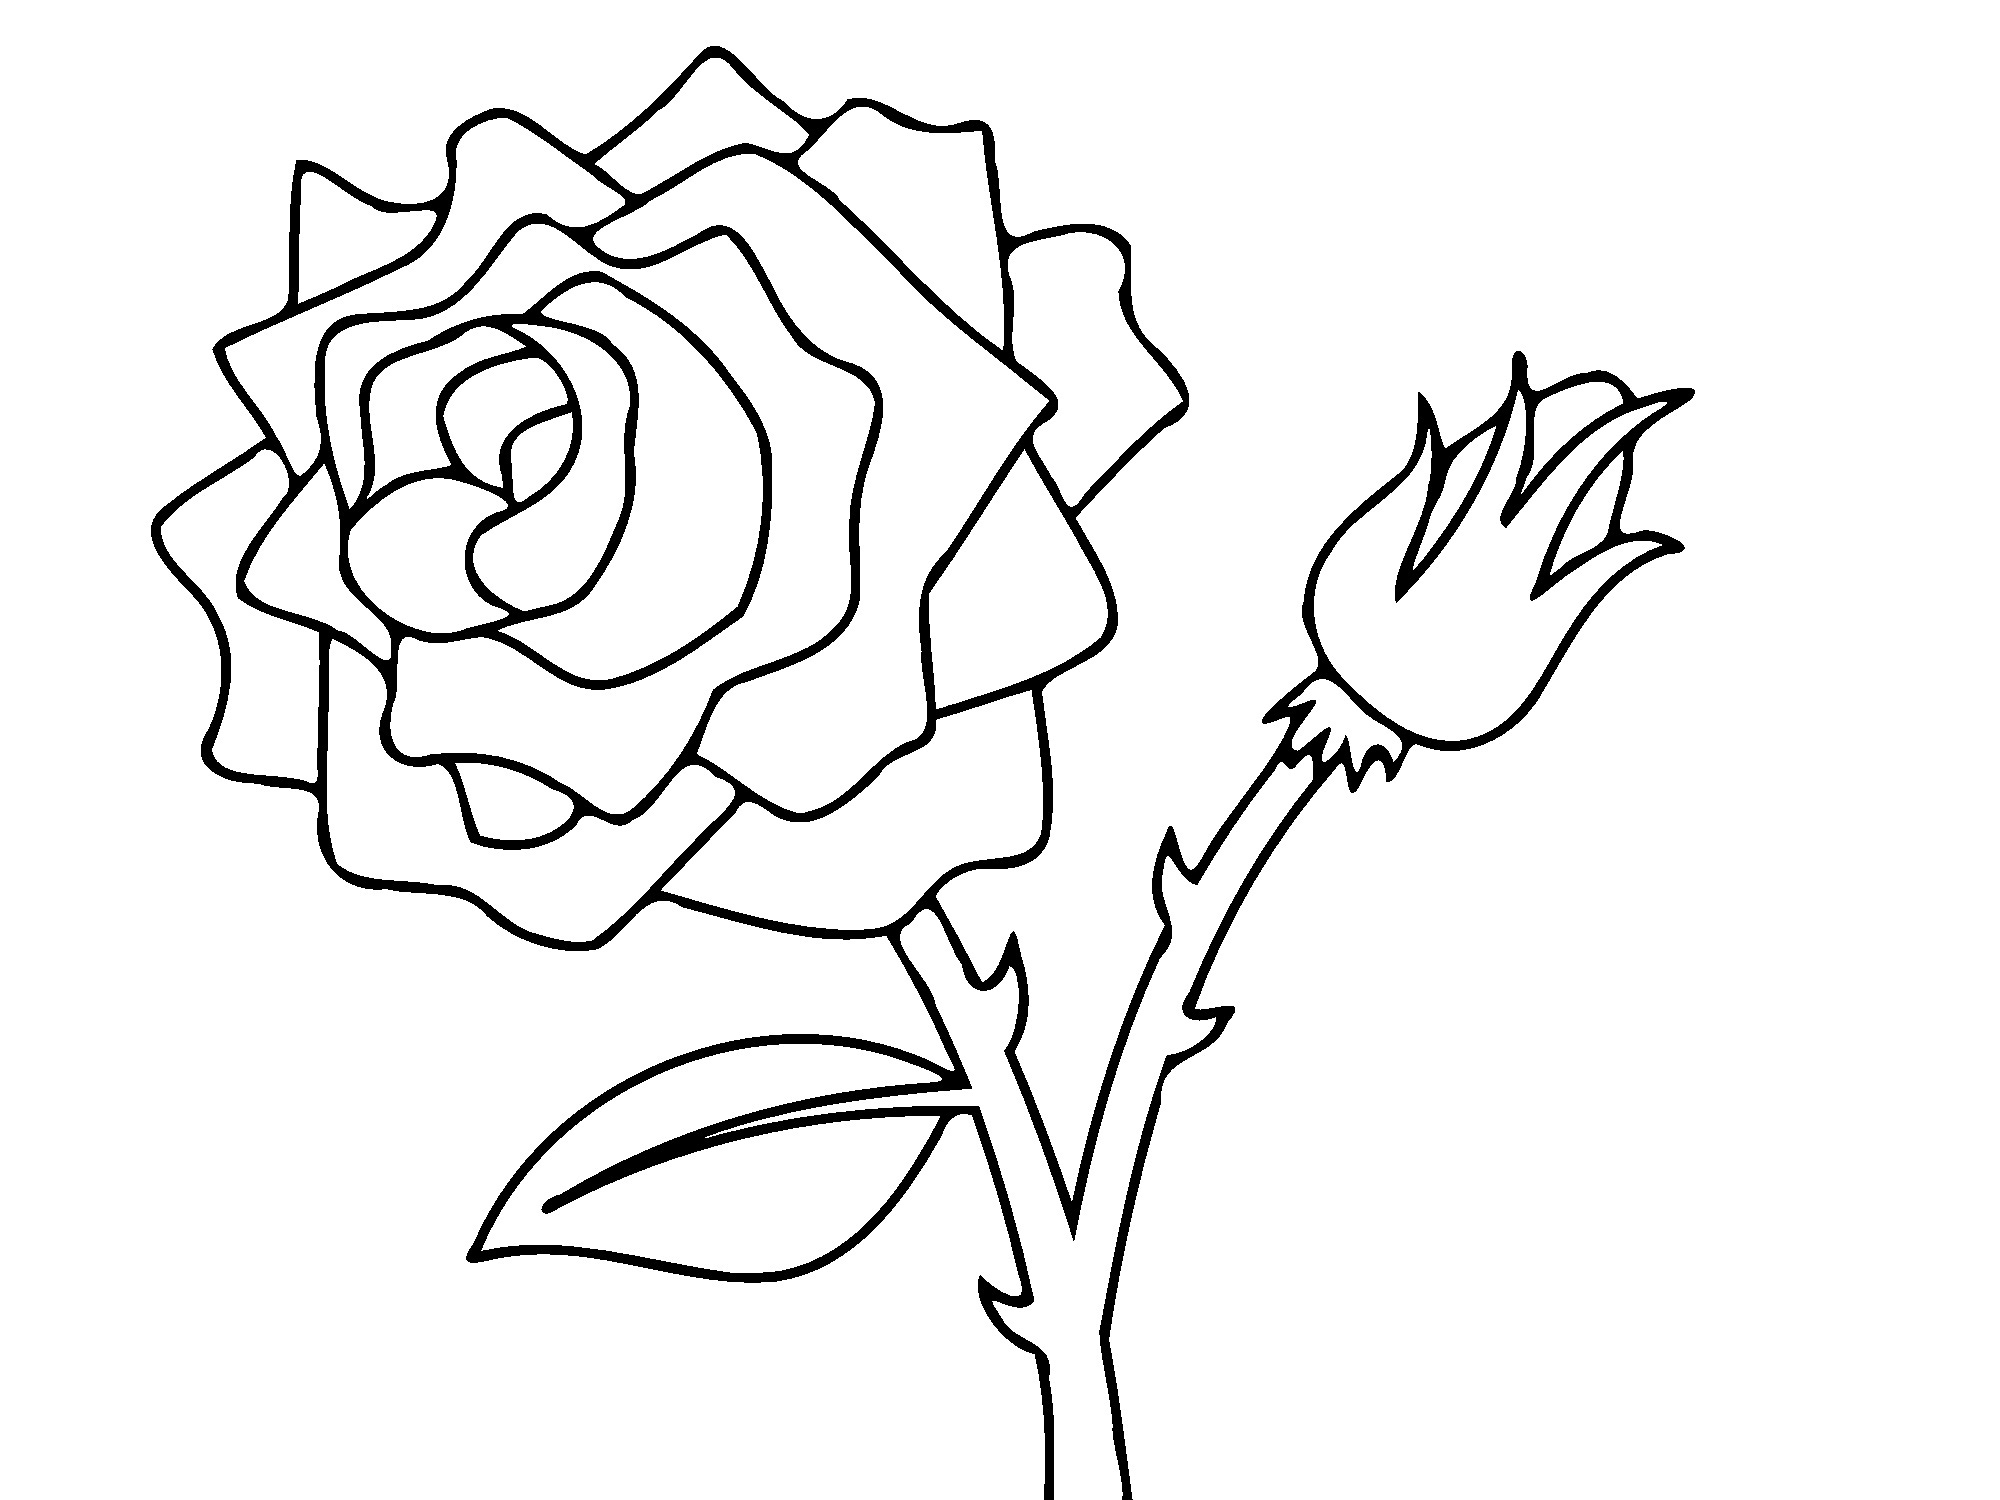 coloring book pages of roses - photo#27